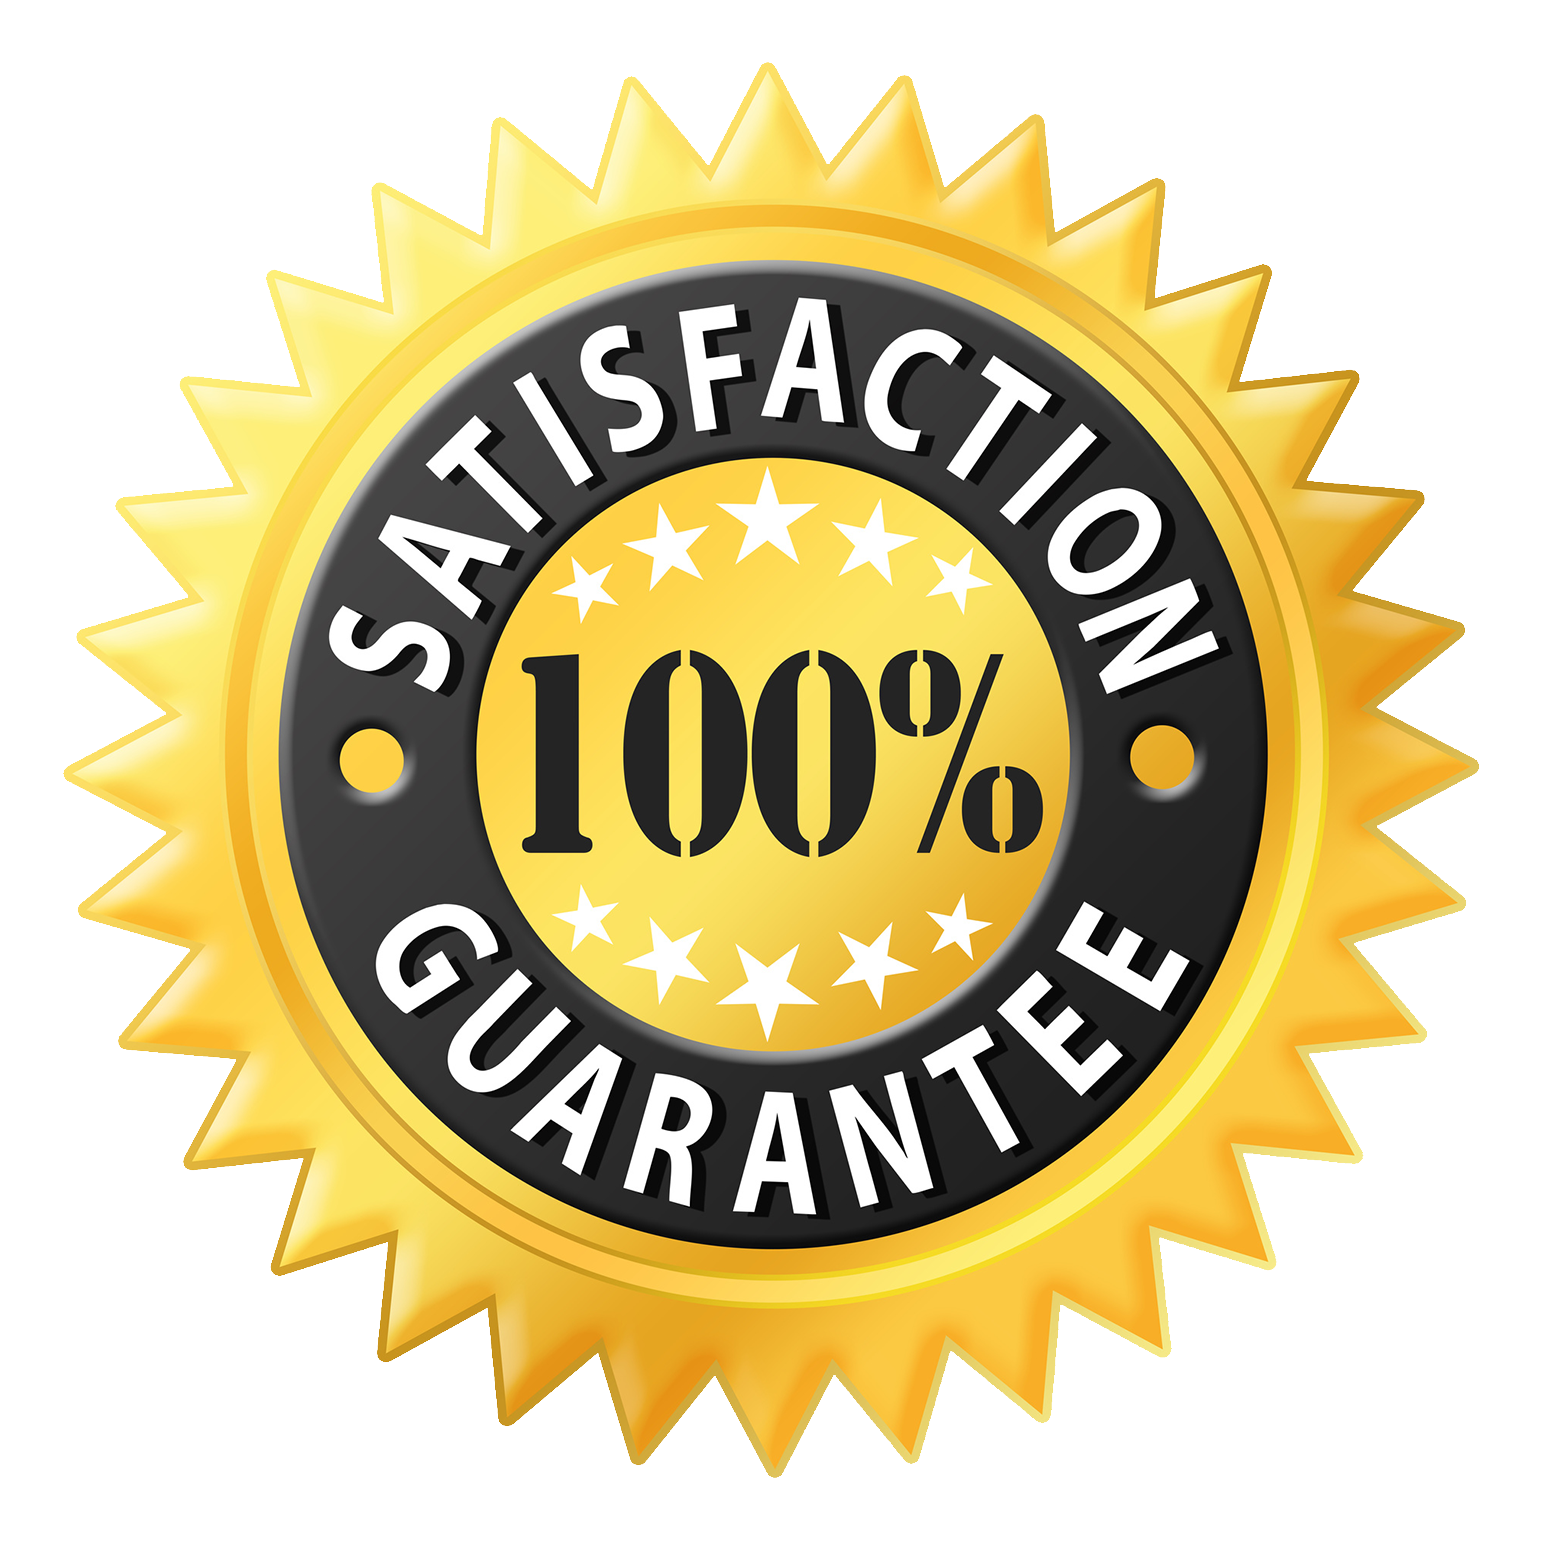 House inspection guarantee